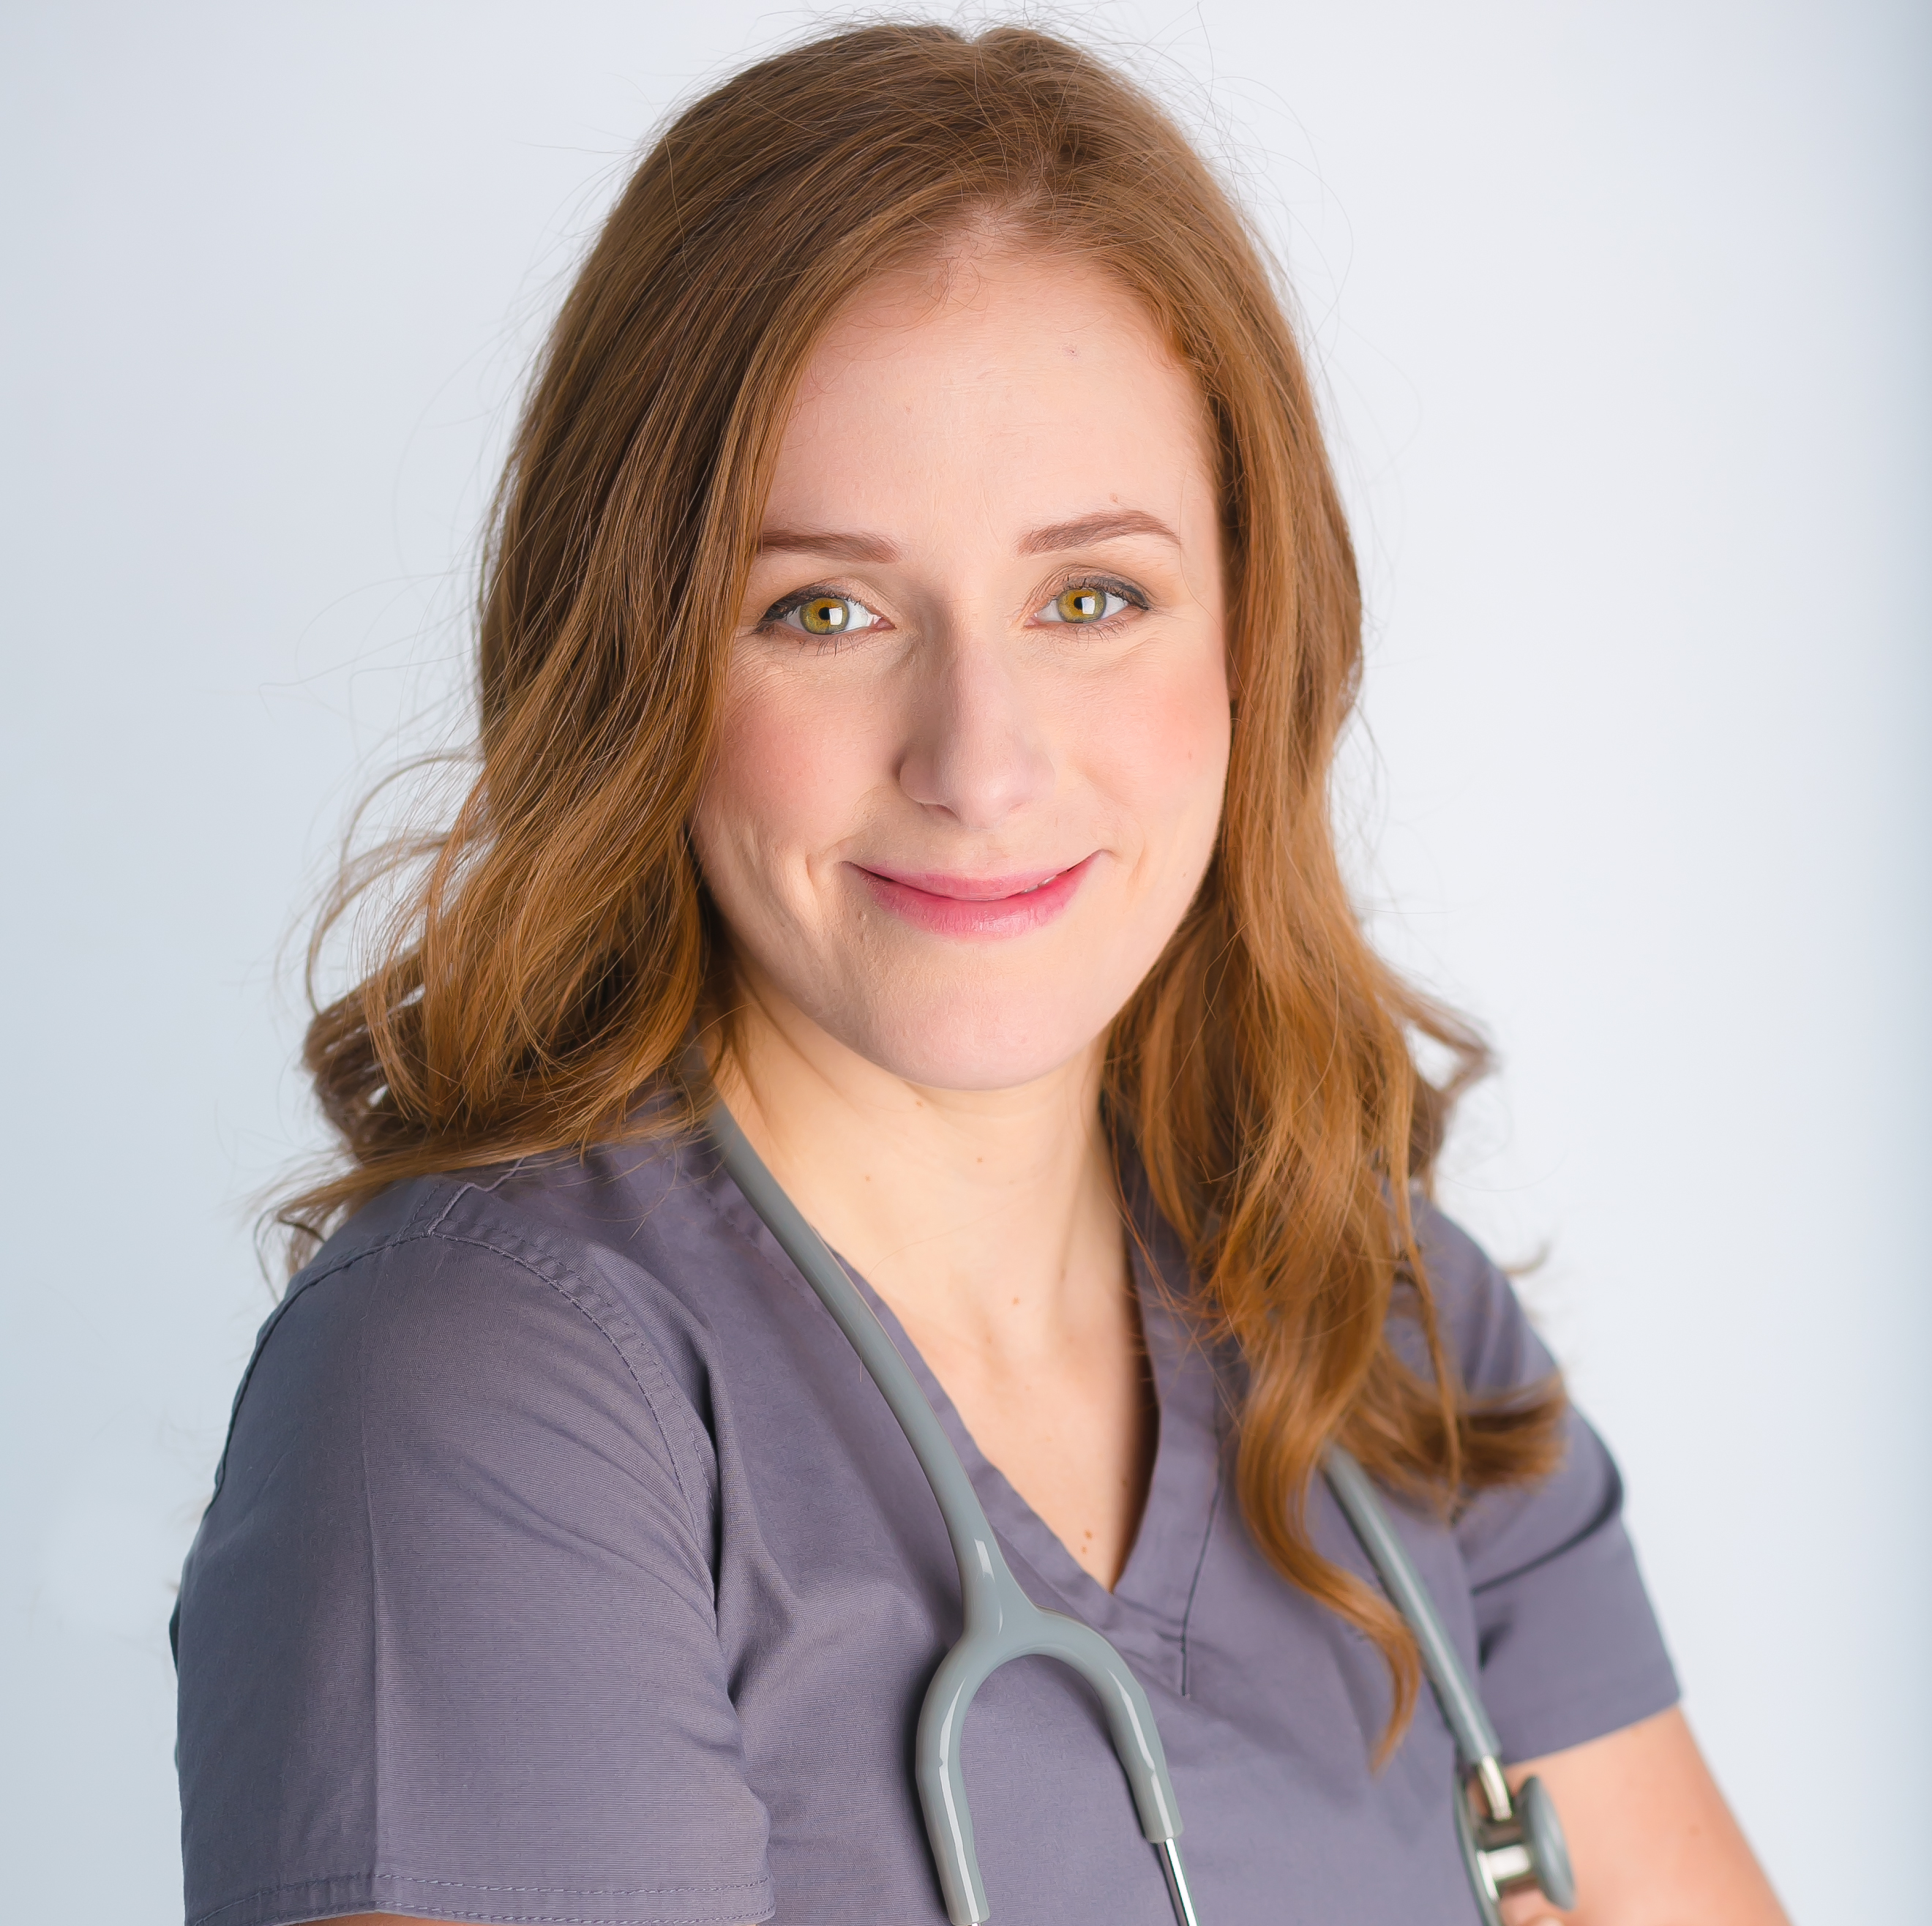 Photo of Melissa Gersin: Nurse turned entrepreneur